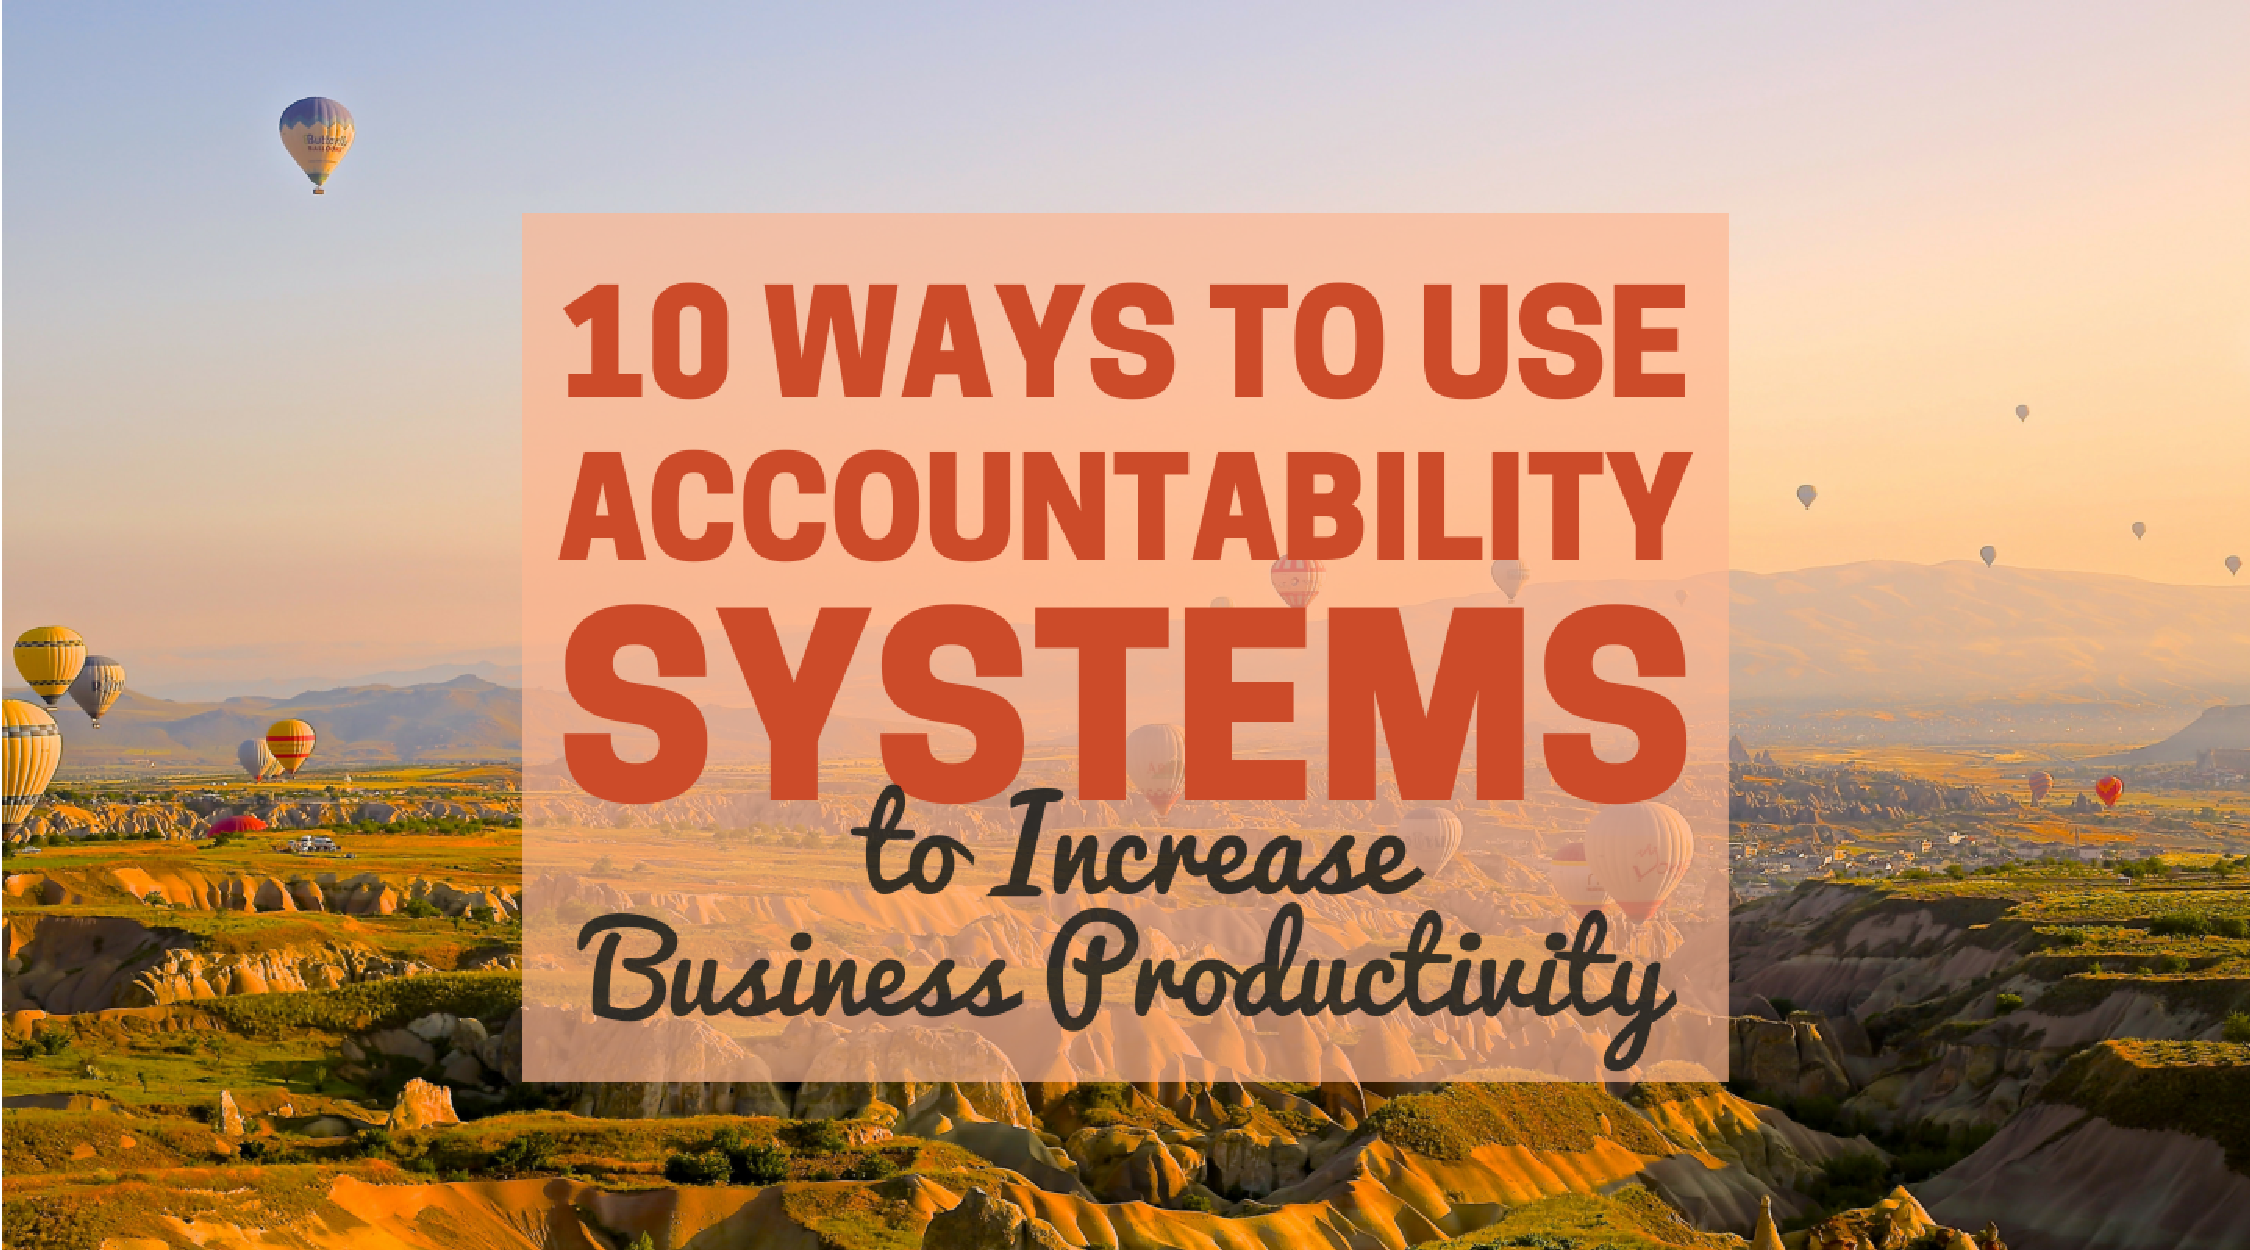 Use Accountability Systems to Increase Productivity